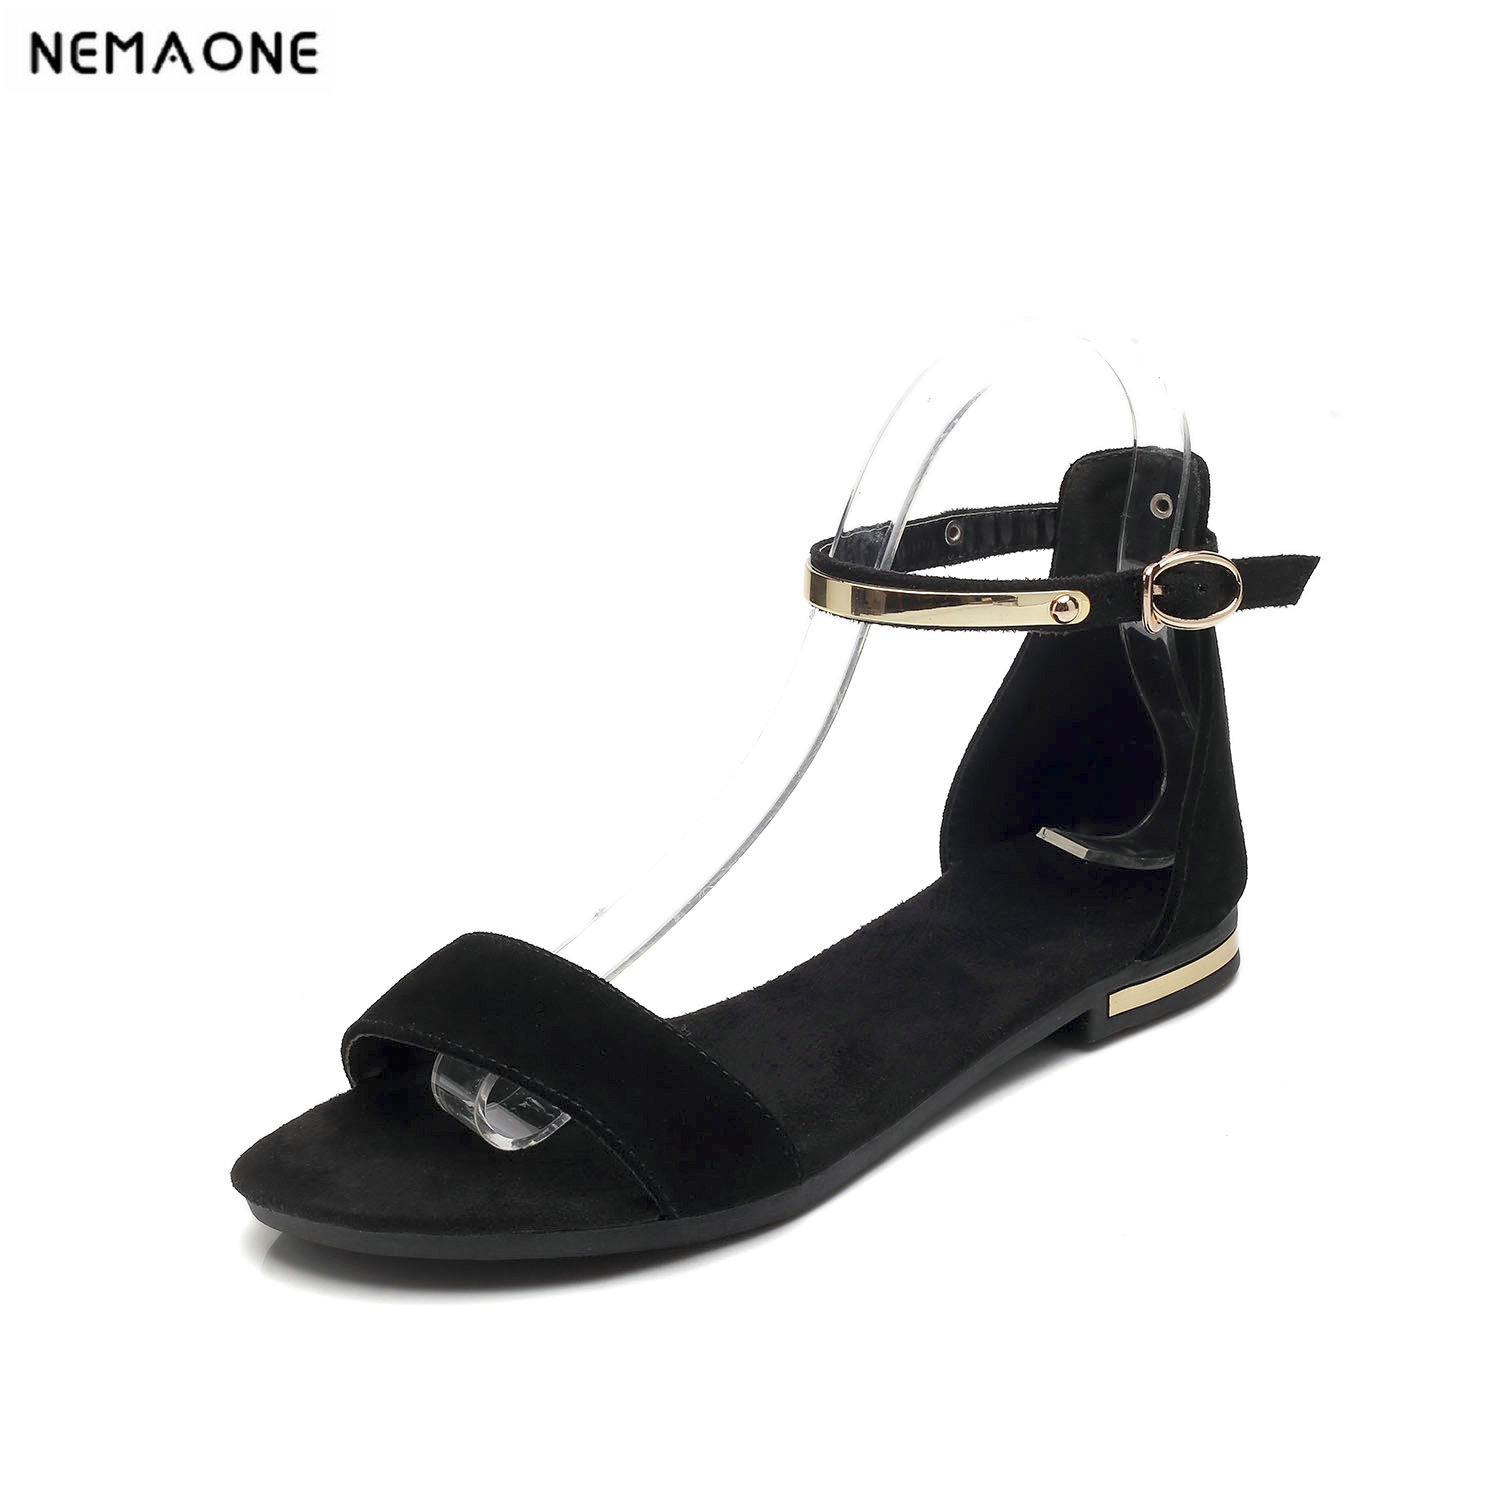 NEMAONE New genuine leather women sandals flat shoes woman summer style beach shoes girl's sandals